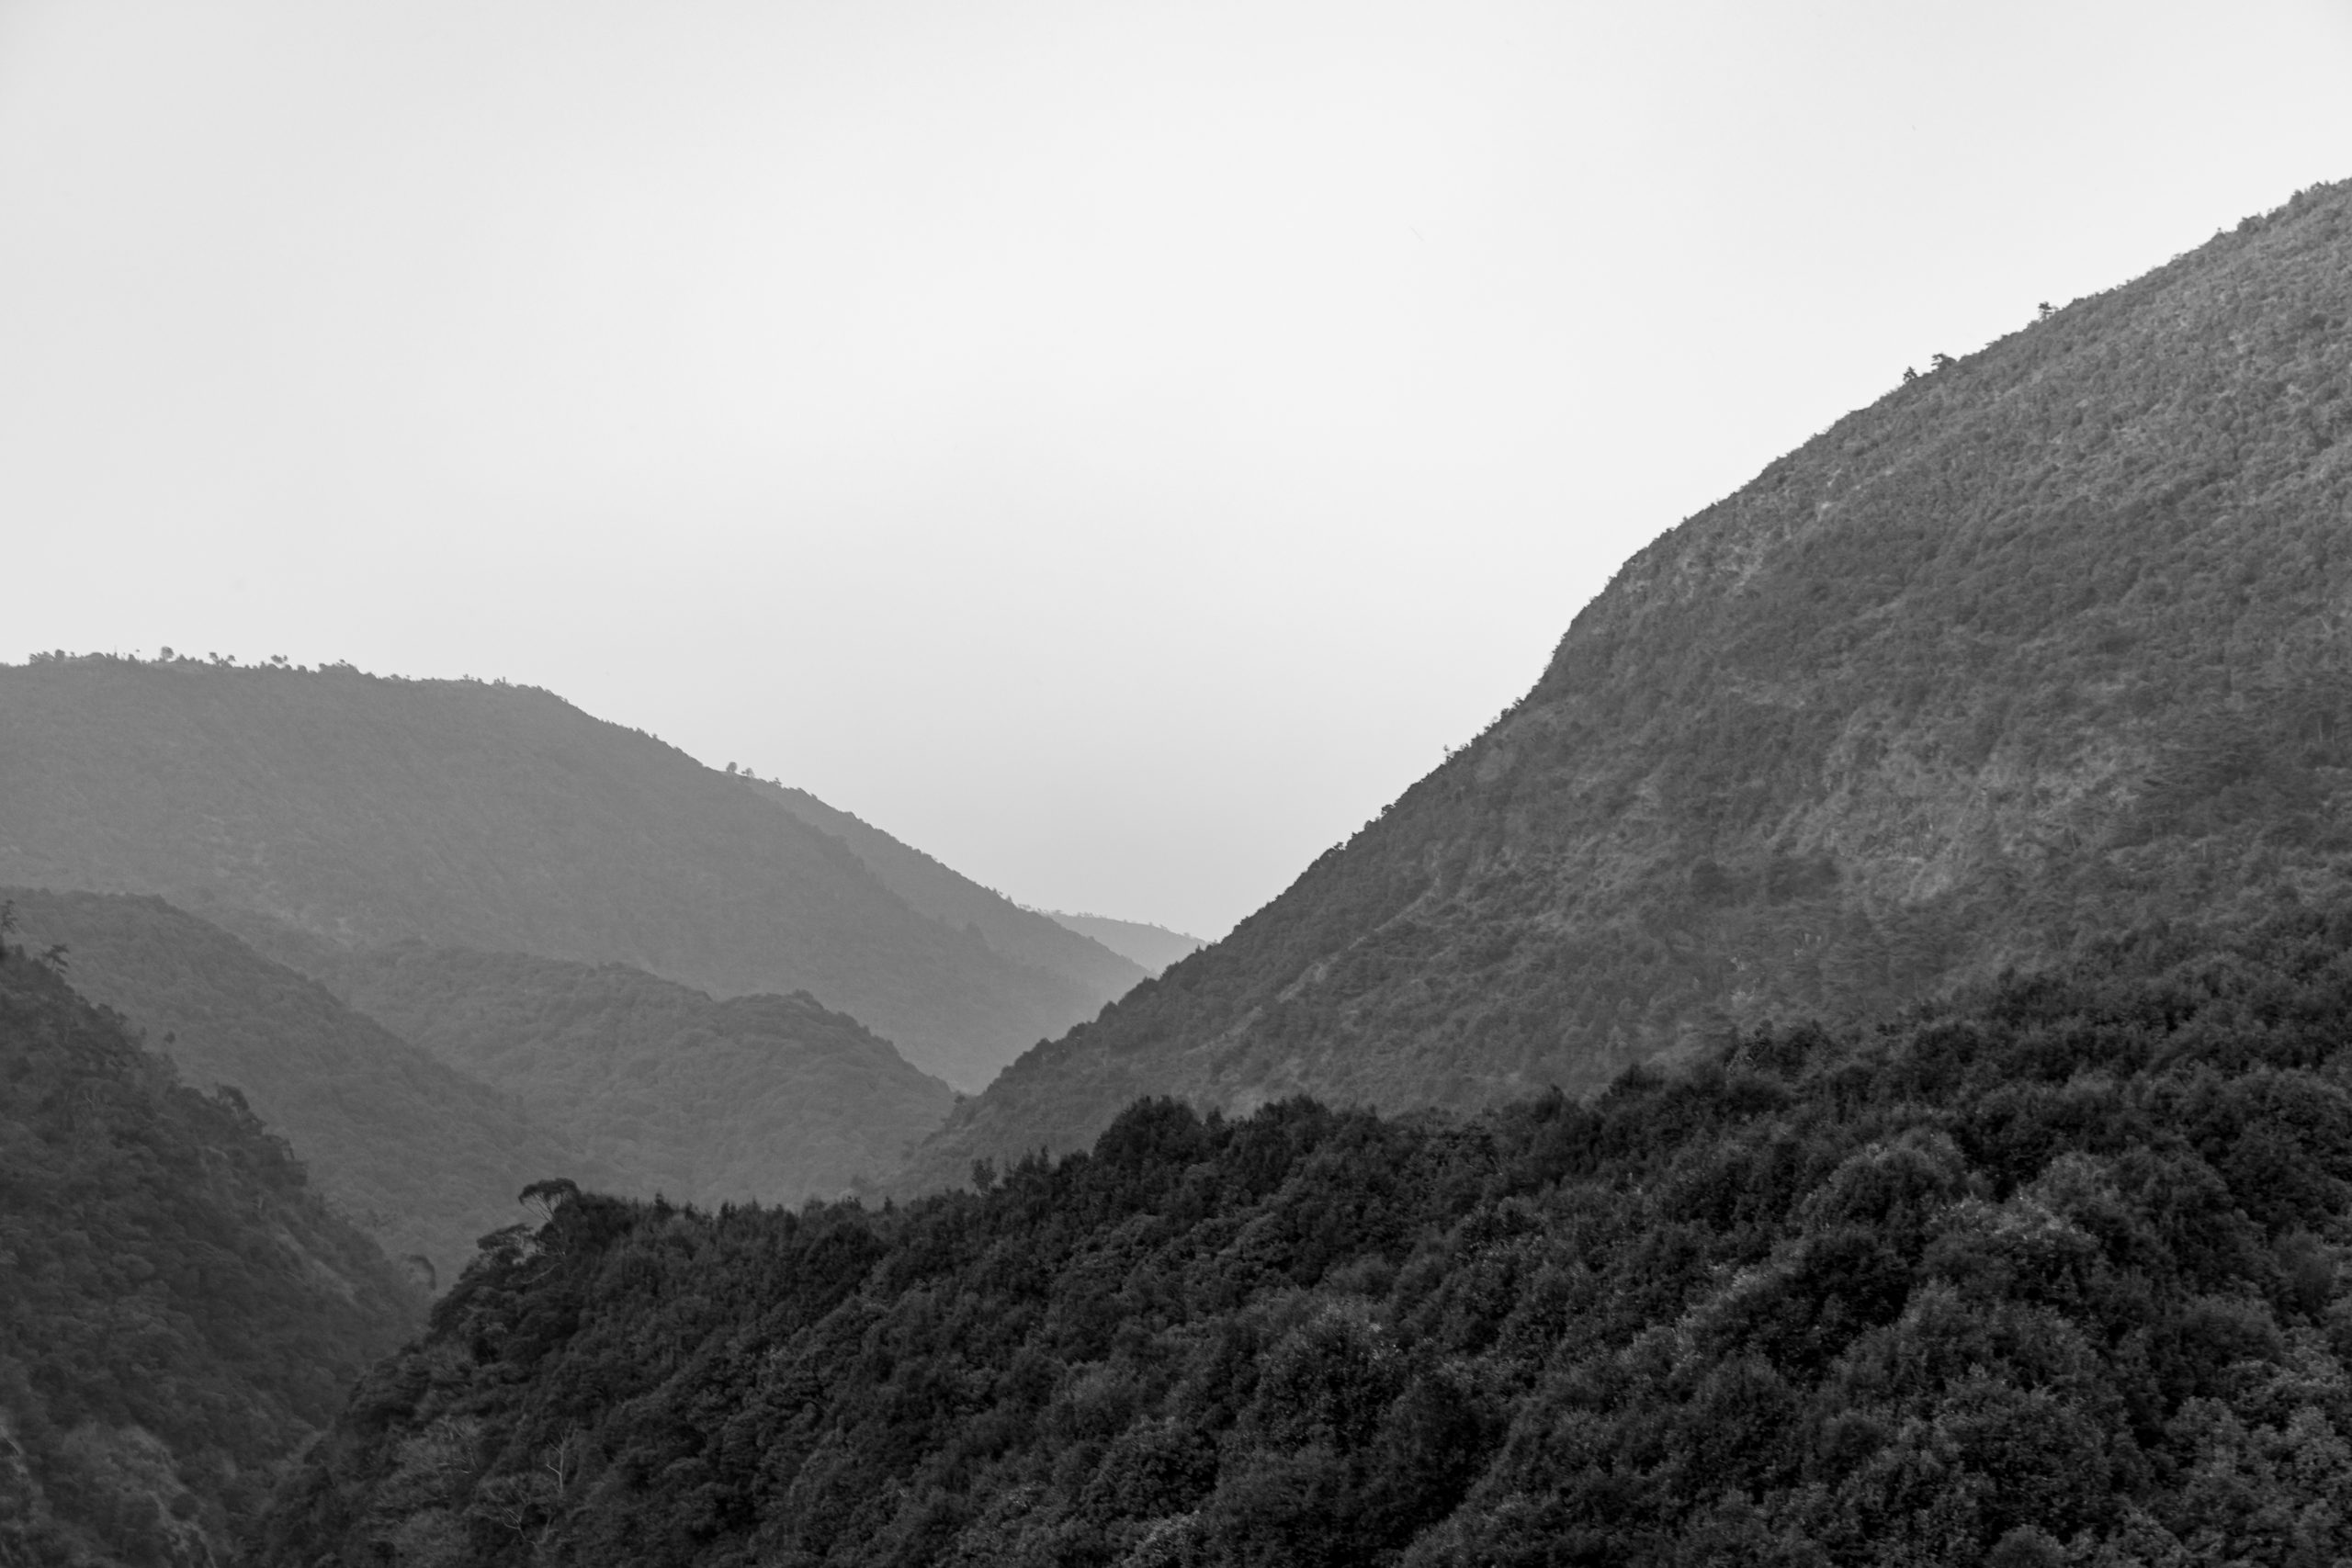 Monochrome landscape of a valley